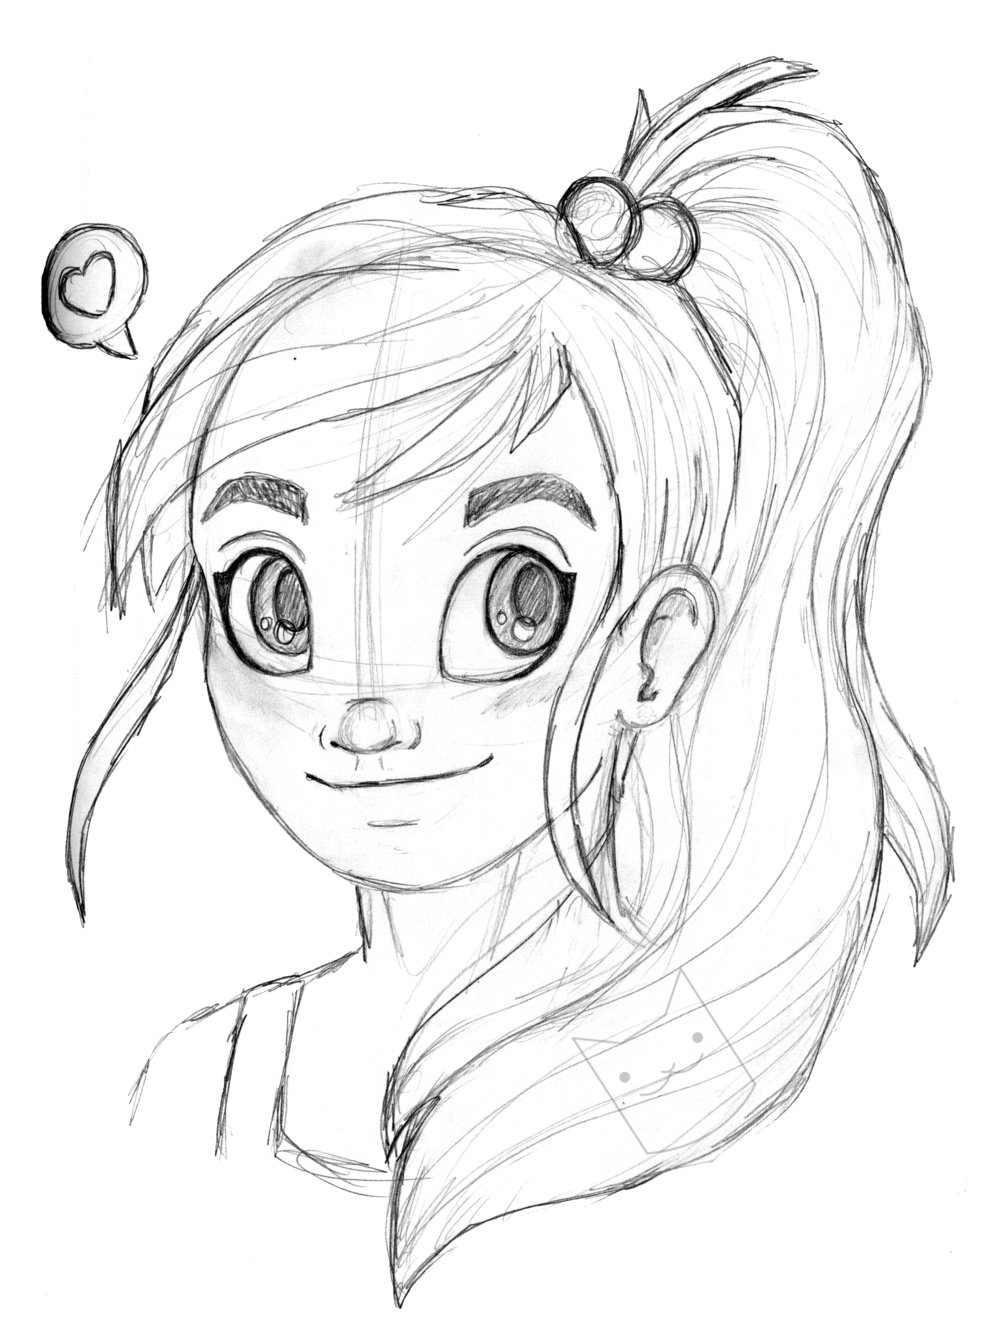 sailor jupiter sketch.jpg